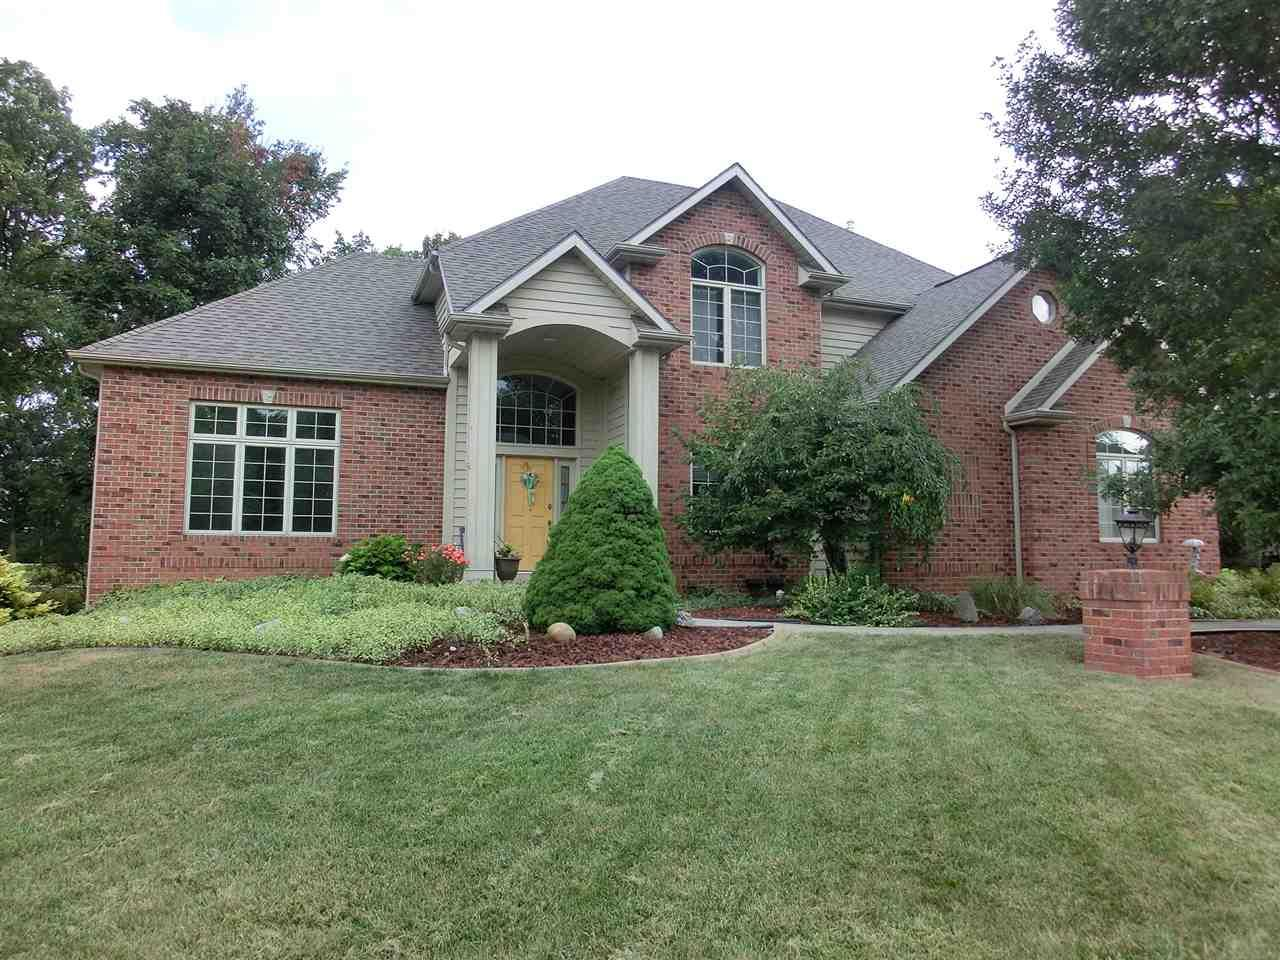 Homes For Sale In Cherry Hill Fort Wayne